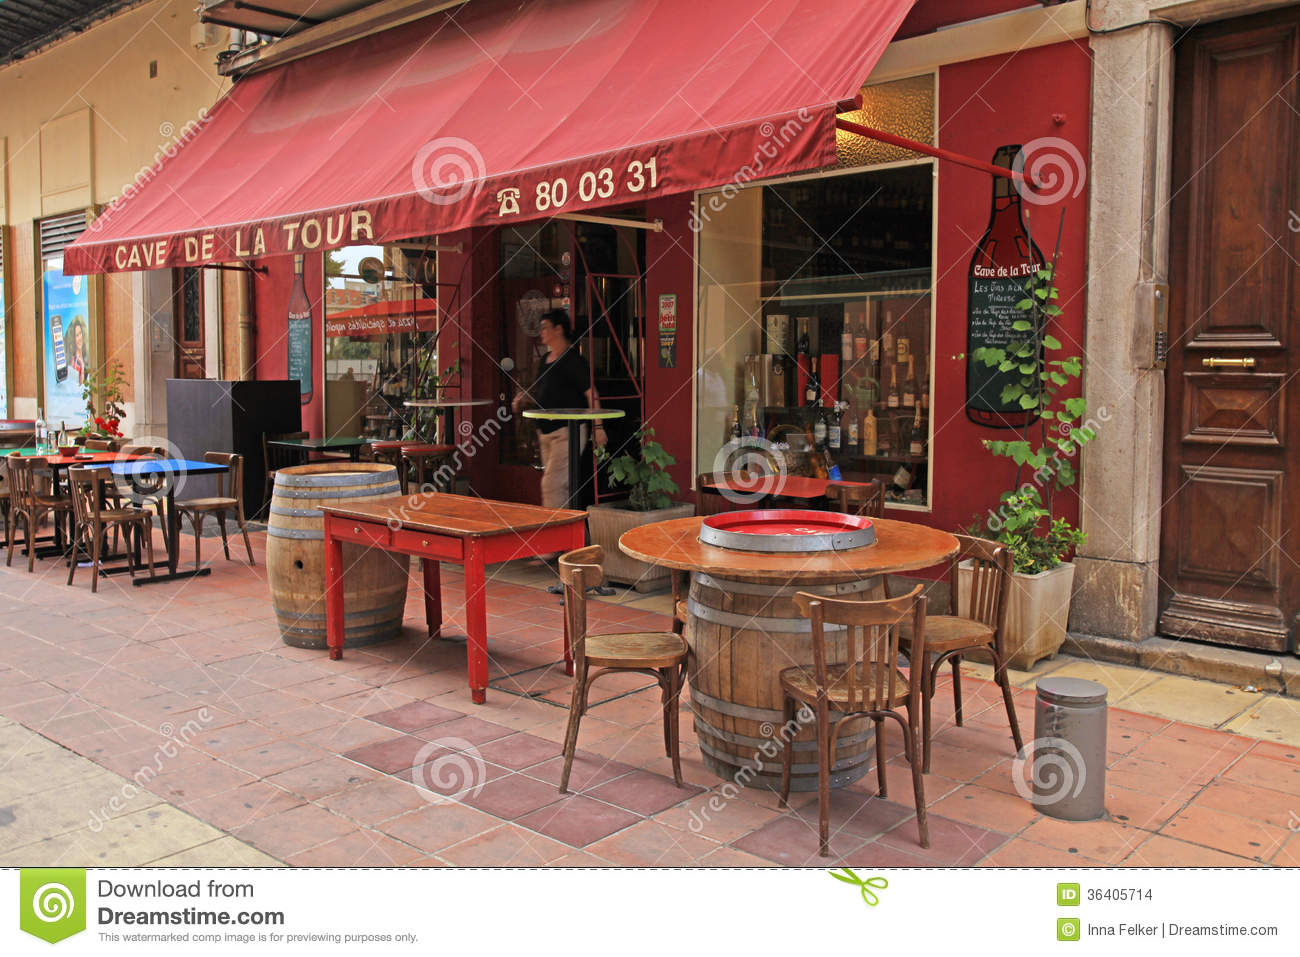 Outdoor Cafe In Old Town Of Nice France Editorial Stock  : outdoor cafe old town nice france may french traditional may 36405714 from dreamstime.com size 1300 x 957 jpeg 203kB